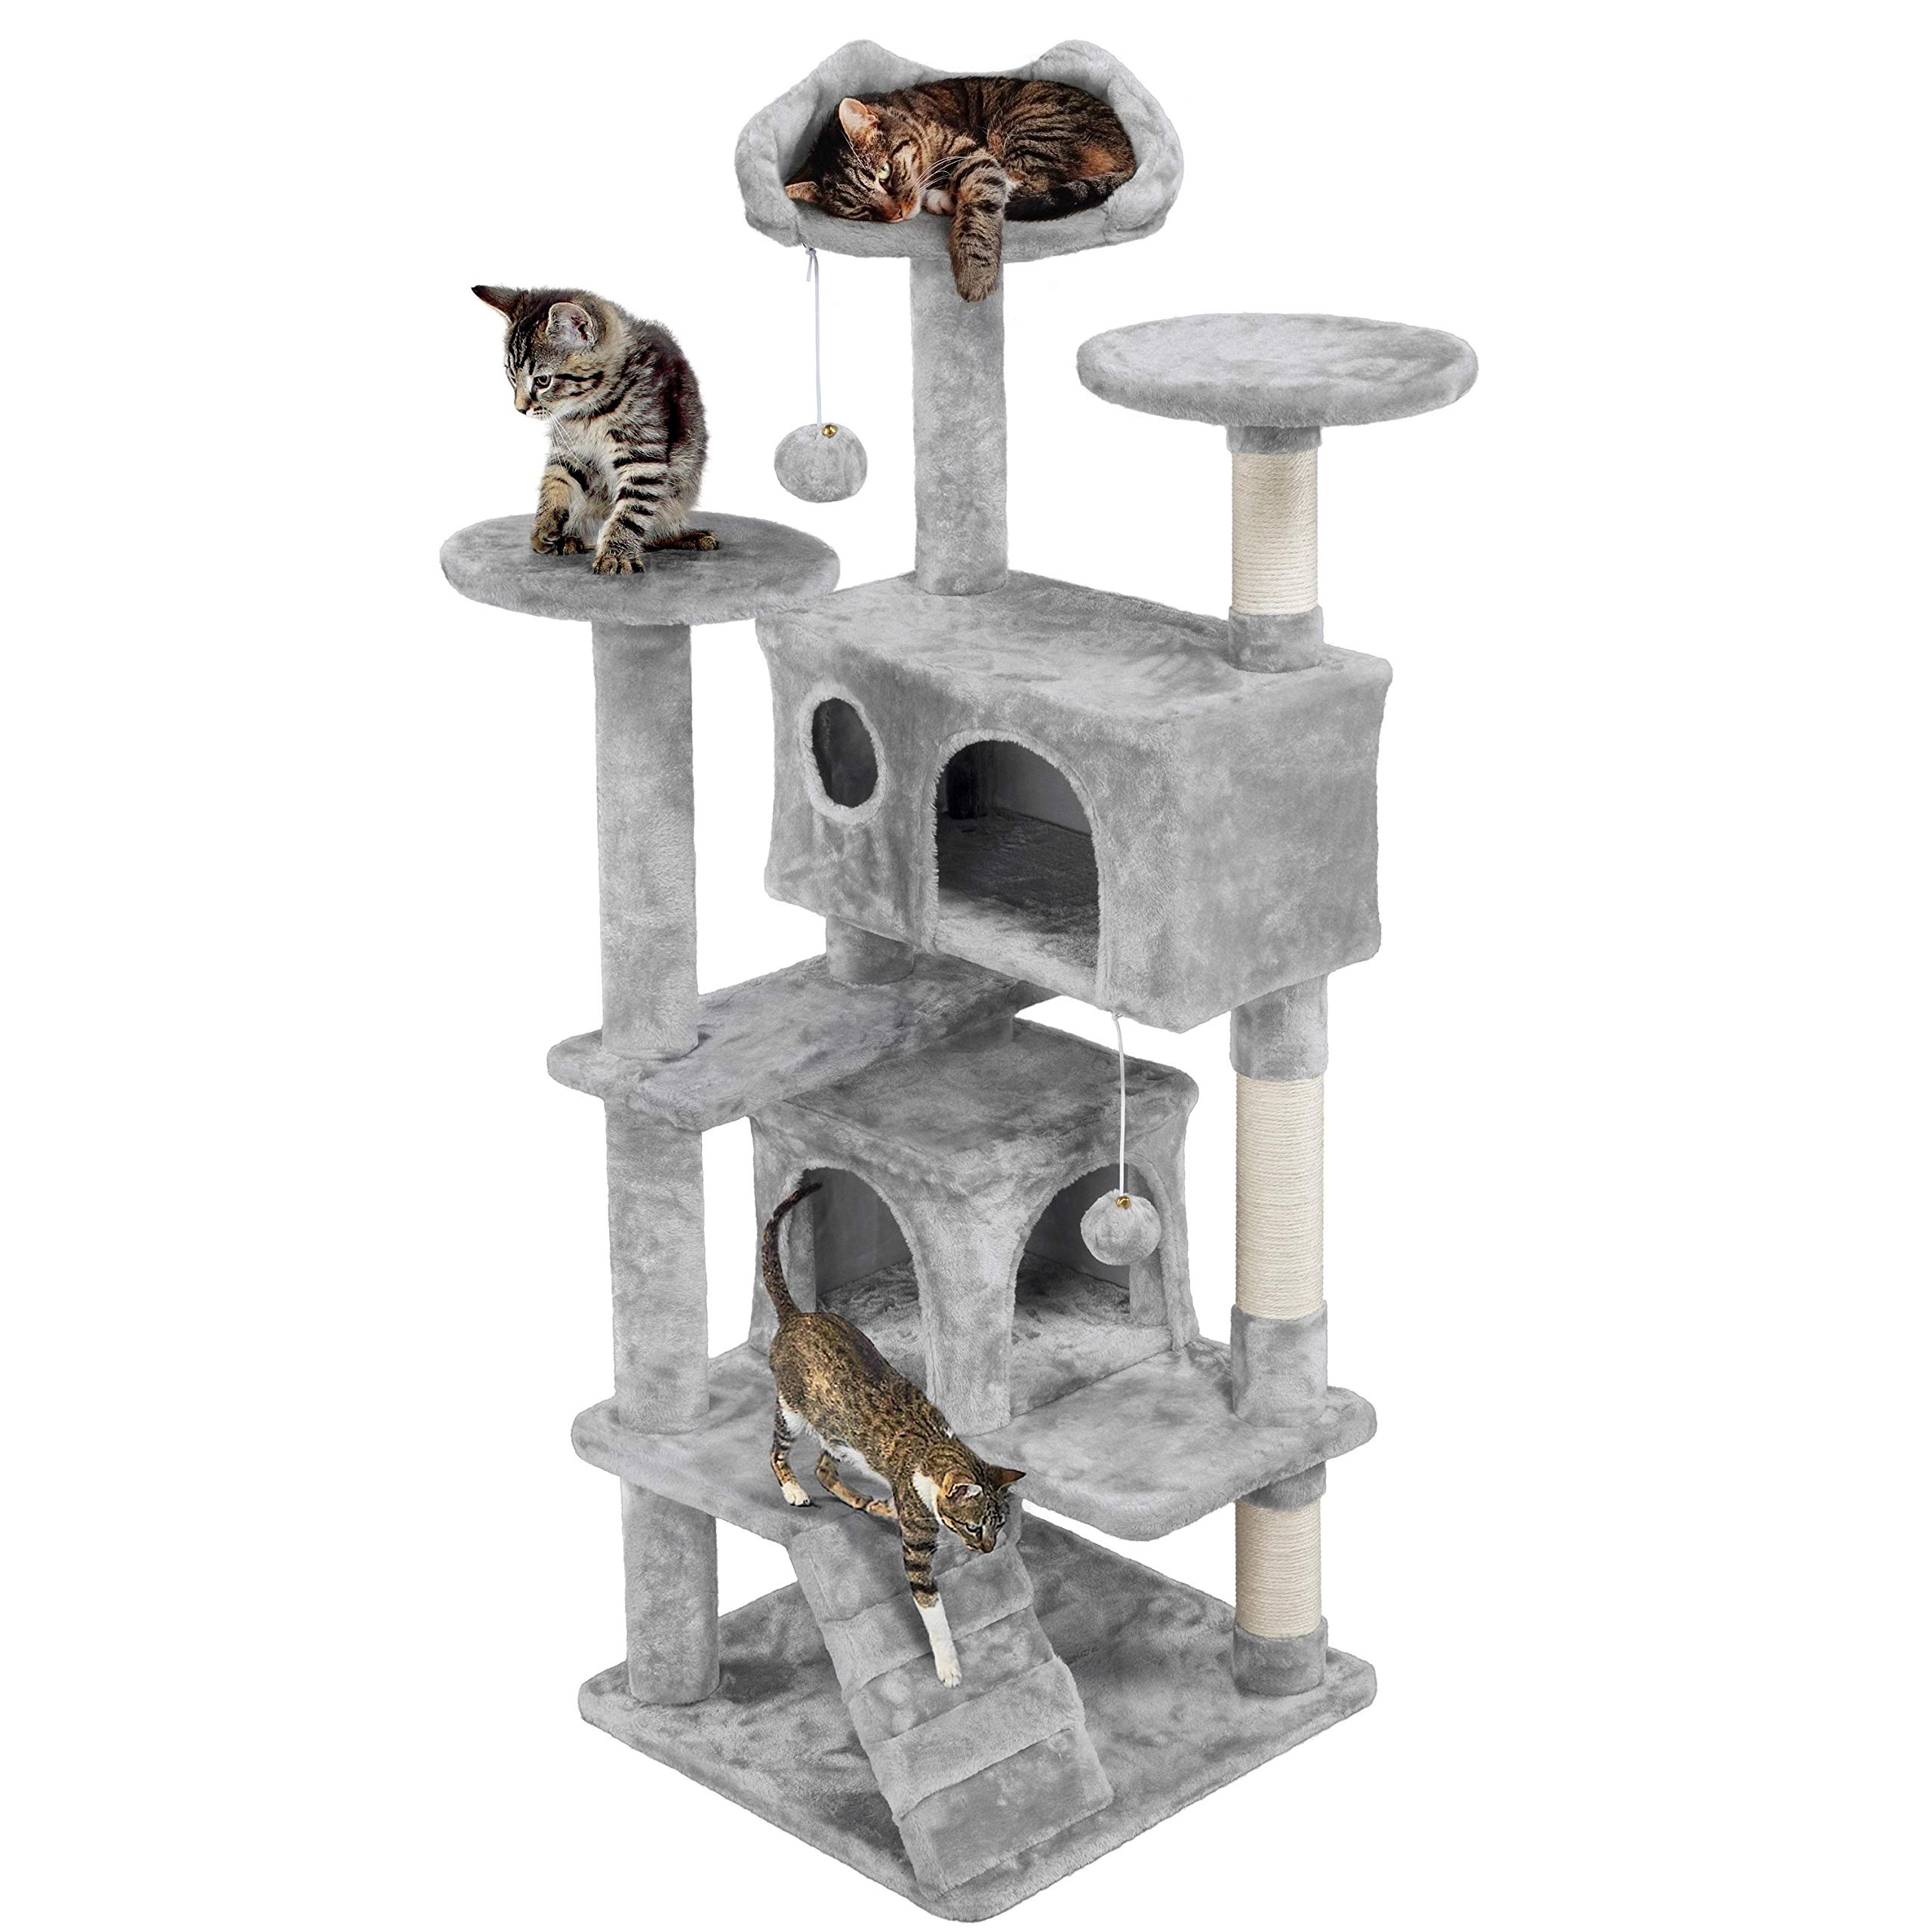 Activity Centre Multi-Level Kitten House with Condo Tall Cat Furniture Climbing Tower for Indoor Cats Large Grey 155CM rabbitgoo Cat Tree and Tower Scratching Post